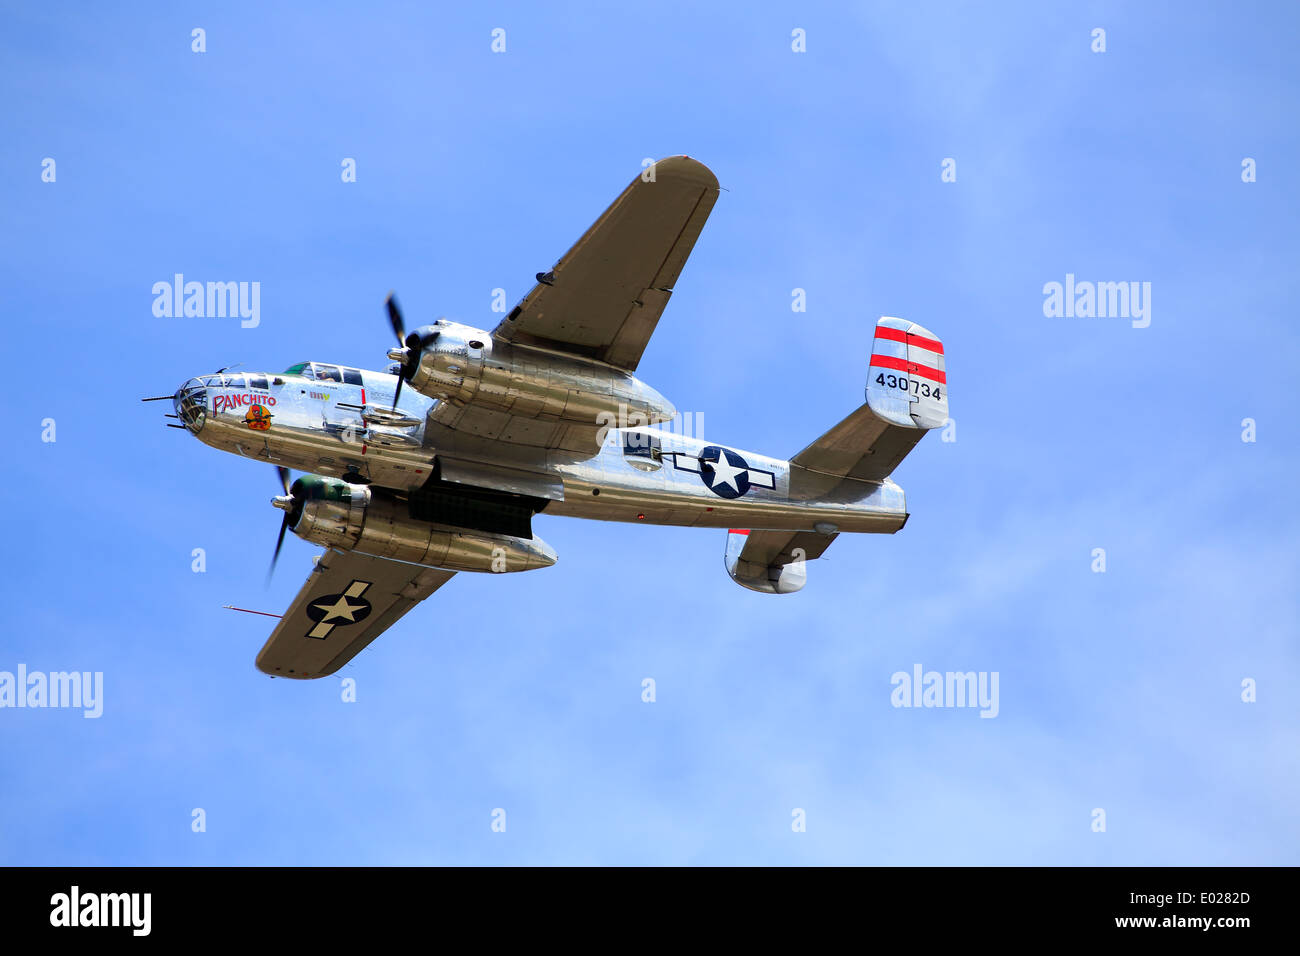 A WW2 WWII world war two B-25 Mitchell Bomber aircraft in flight - Stock Image